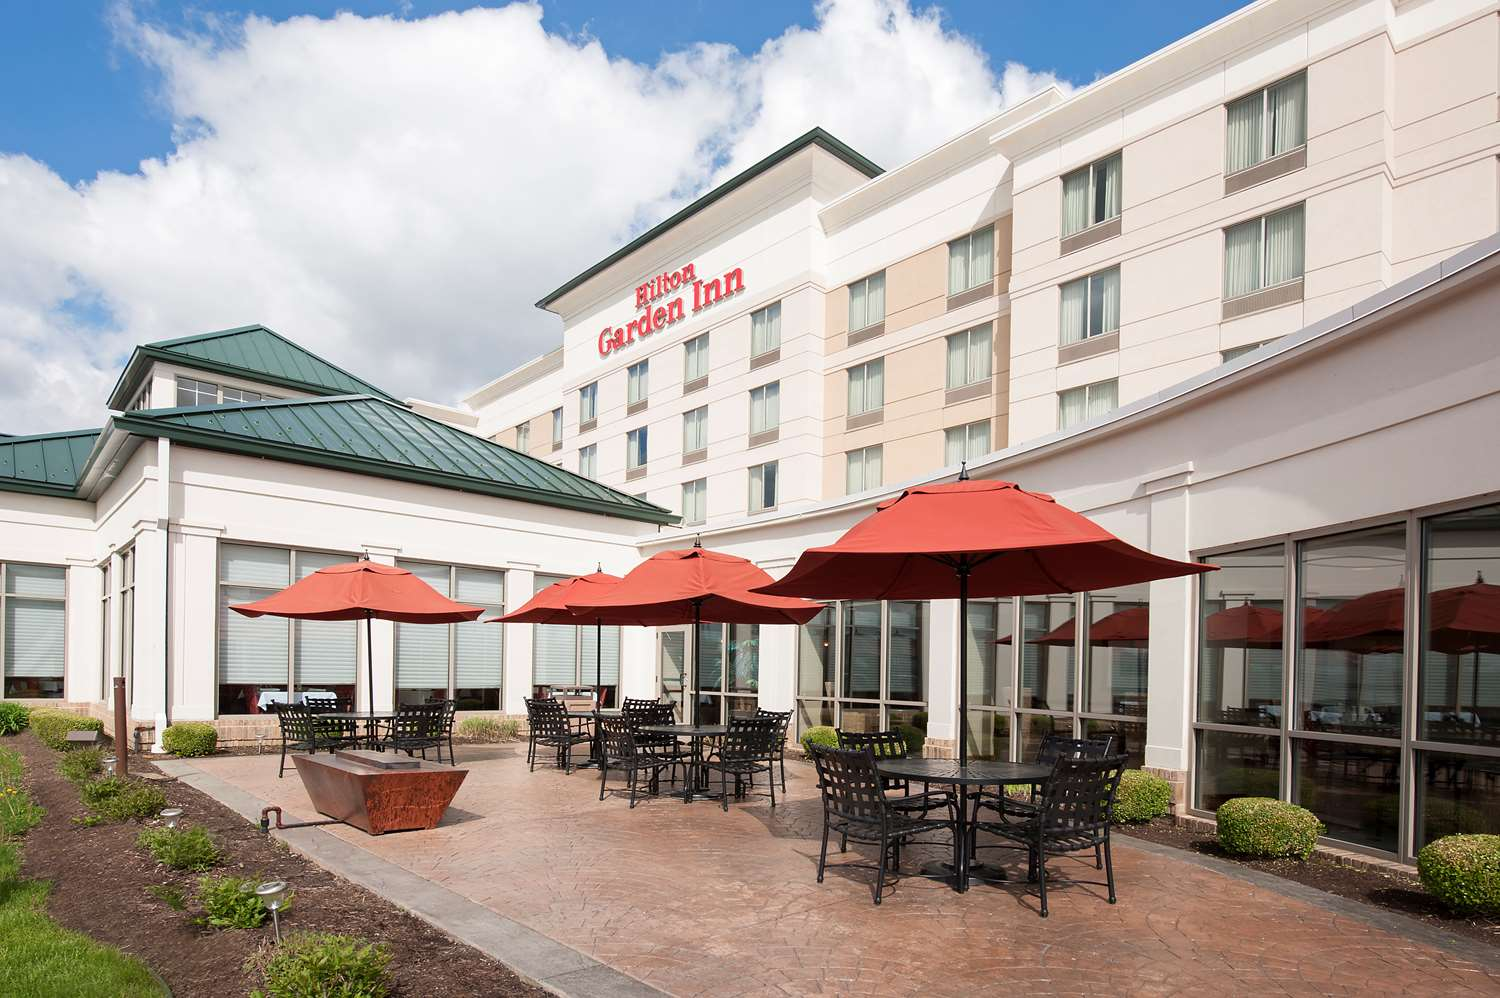 Hotels near edinburgh premium outlets edinburgh in for Hilton garden inn edinburgh in